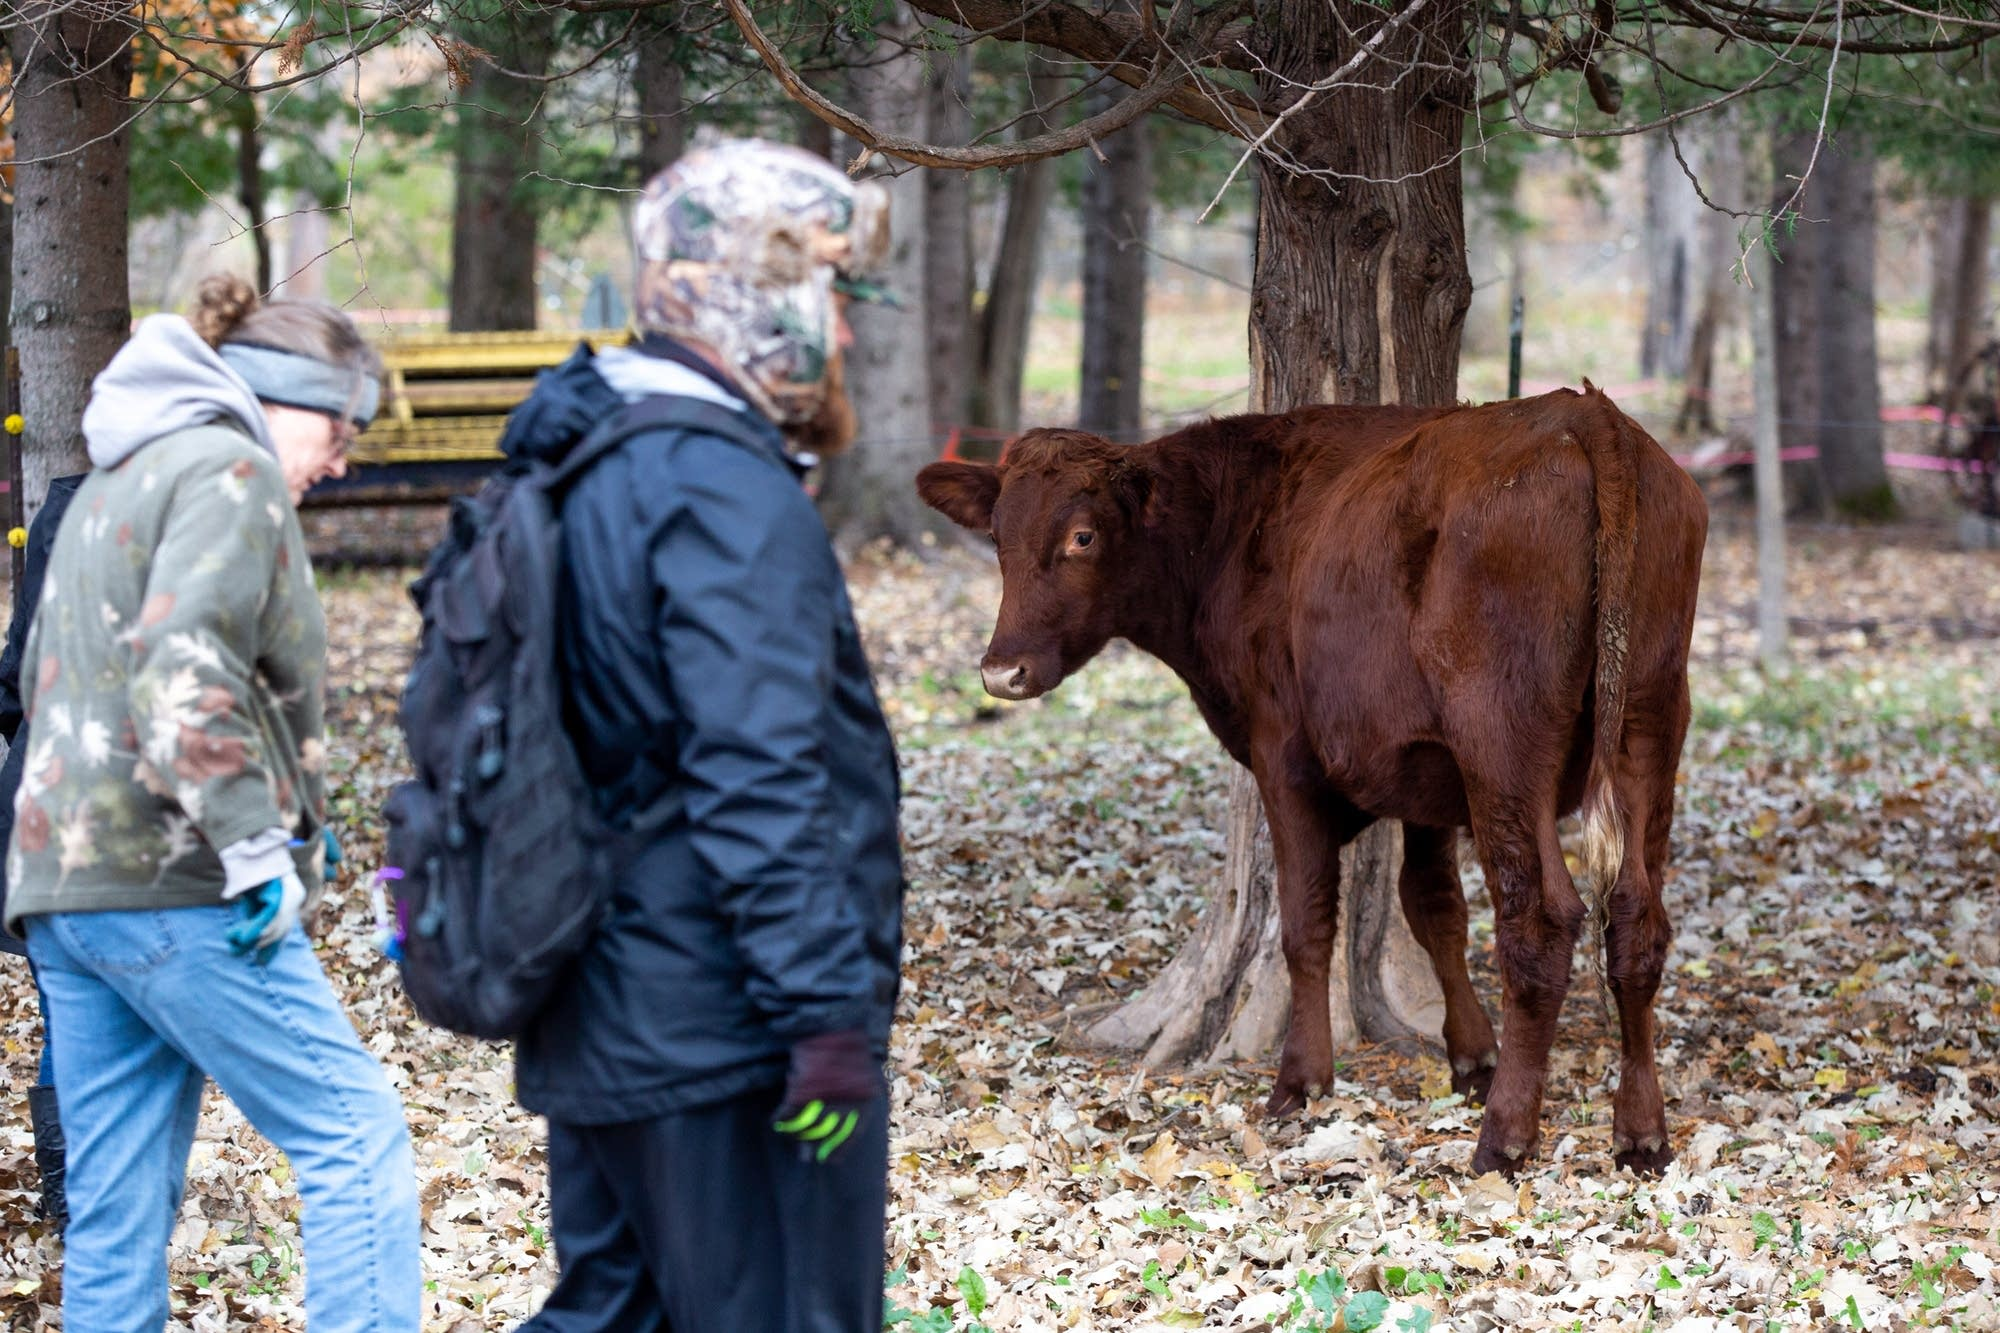 A cow looks at volunteers as they search the pasture.